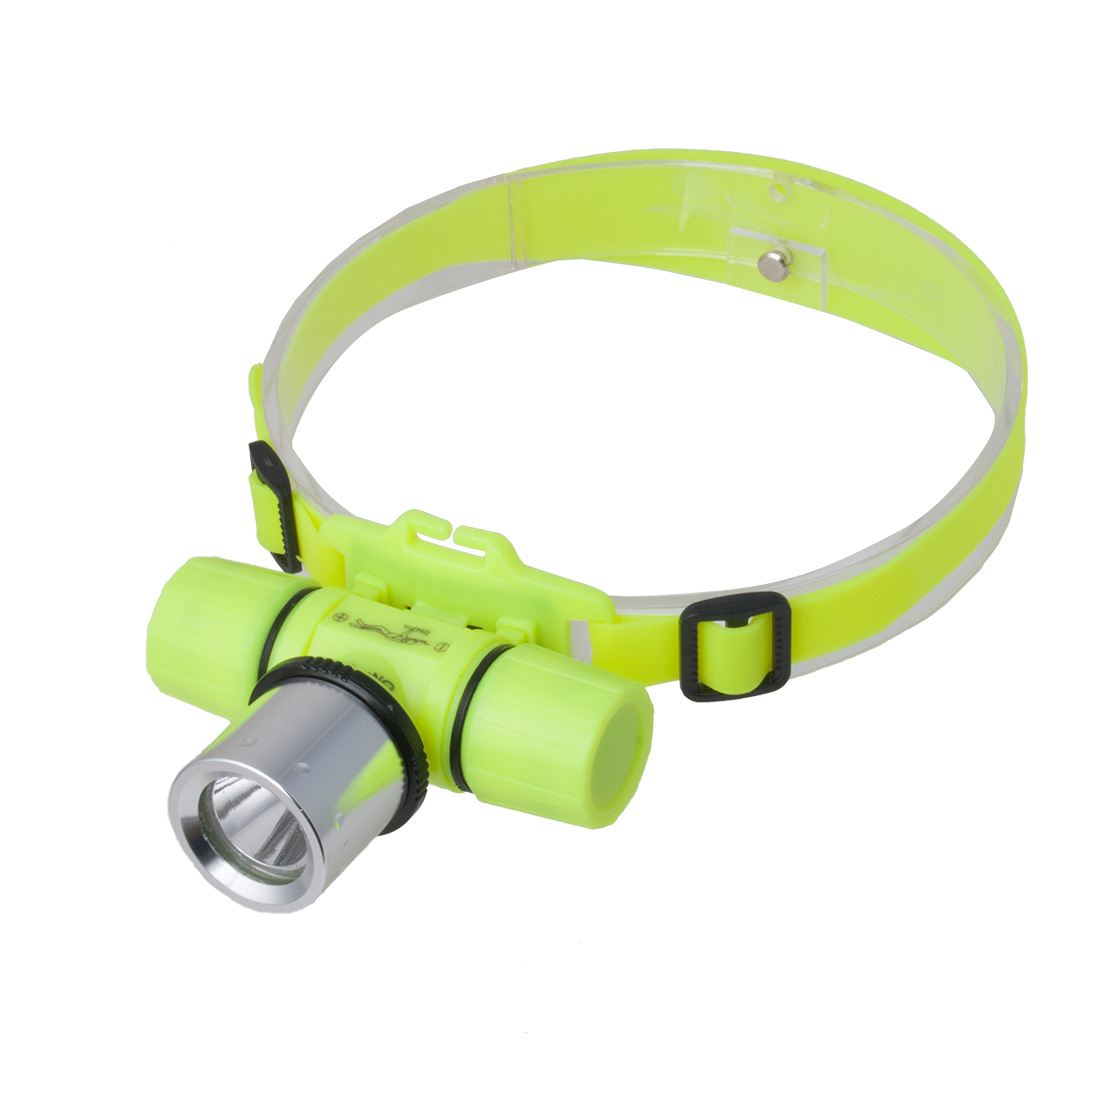 Diver Diving LED Headlamp Swimming Waterproof Headlight Torch Lamp Dive Light 3 Modes